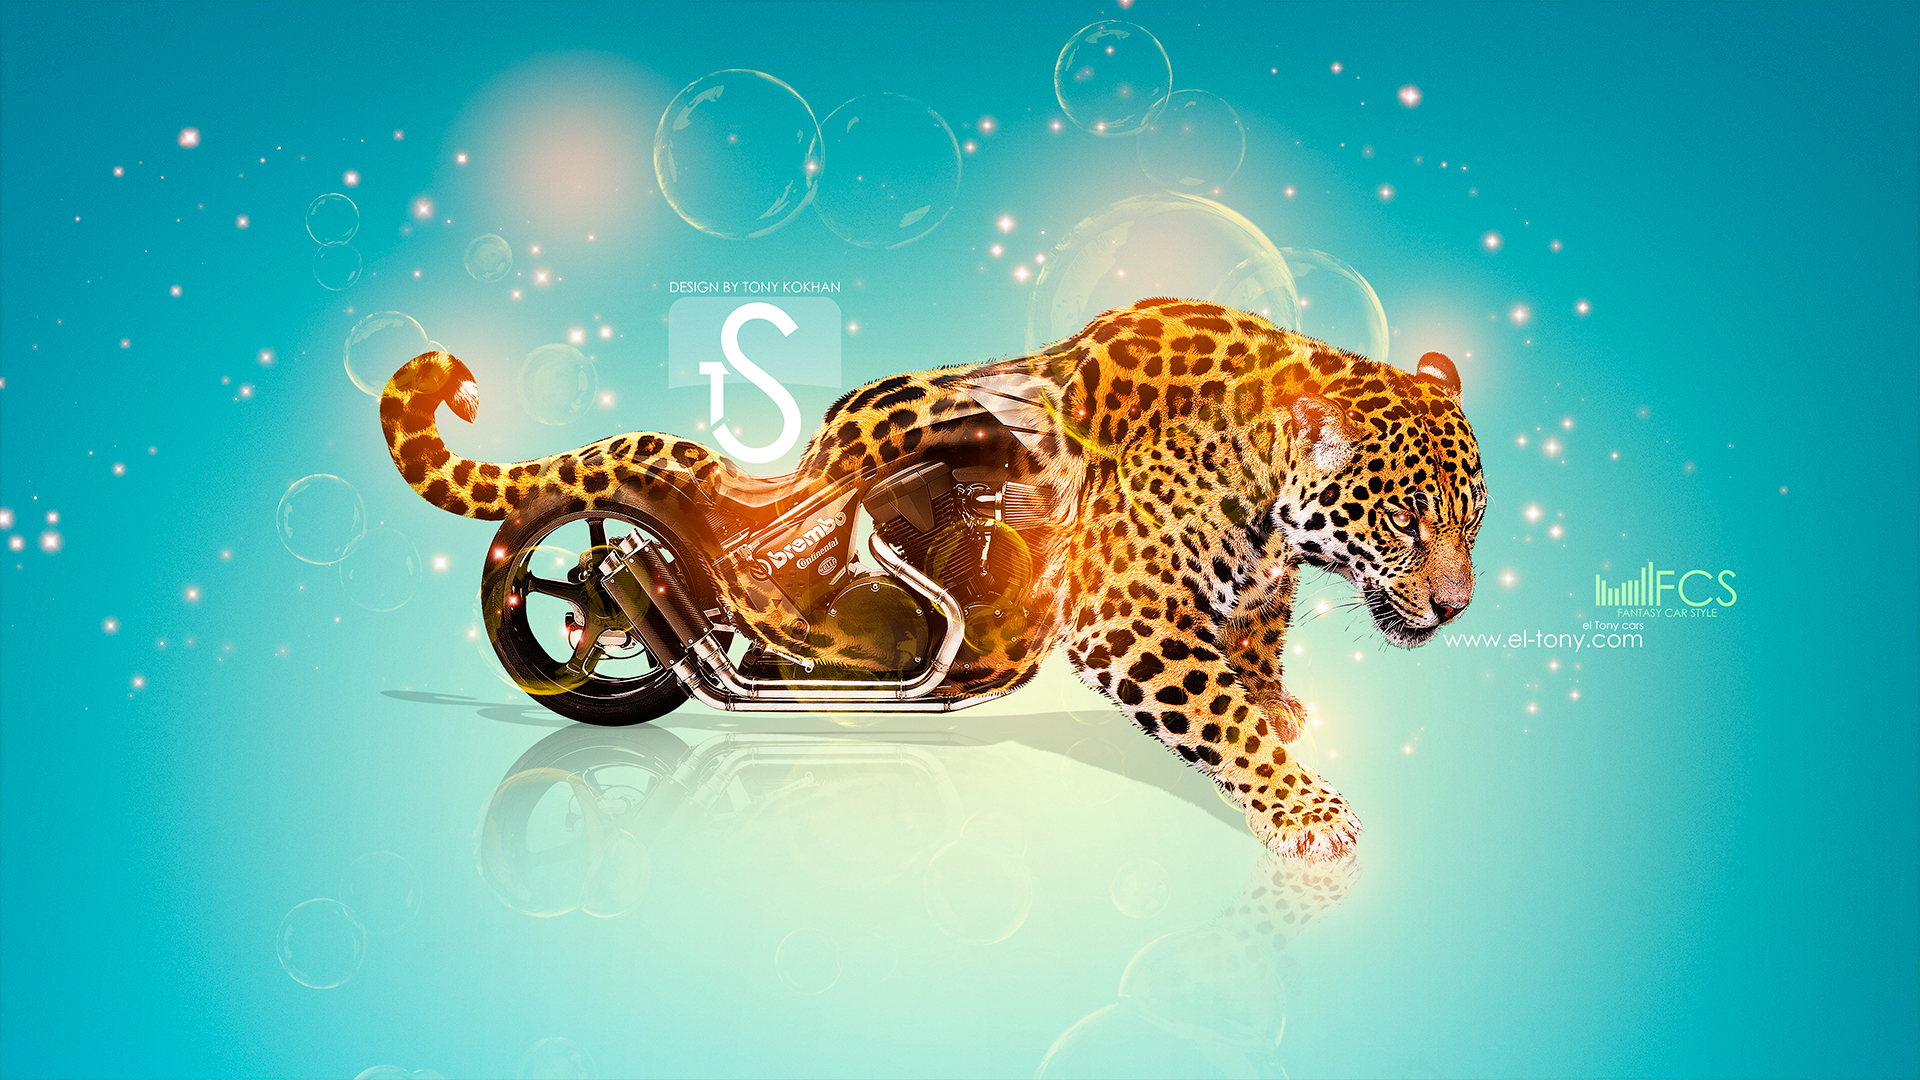 Merveilleux ... Moto Honda Switchblade Fantasy Leopard 2013 HD Wallpapers  ...